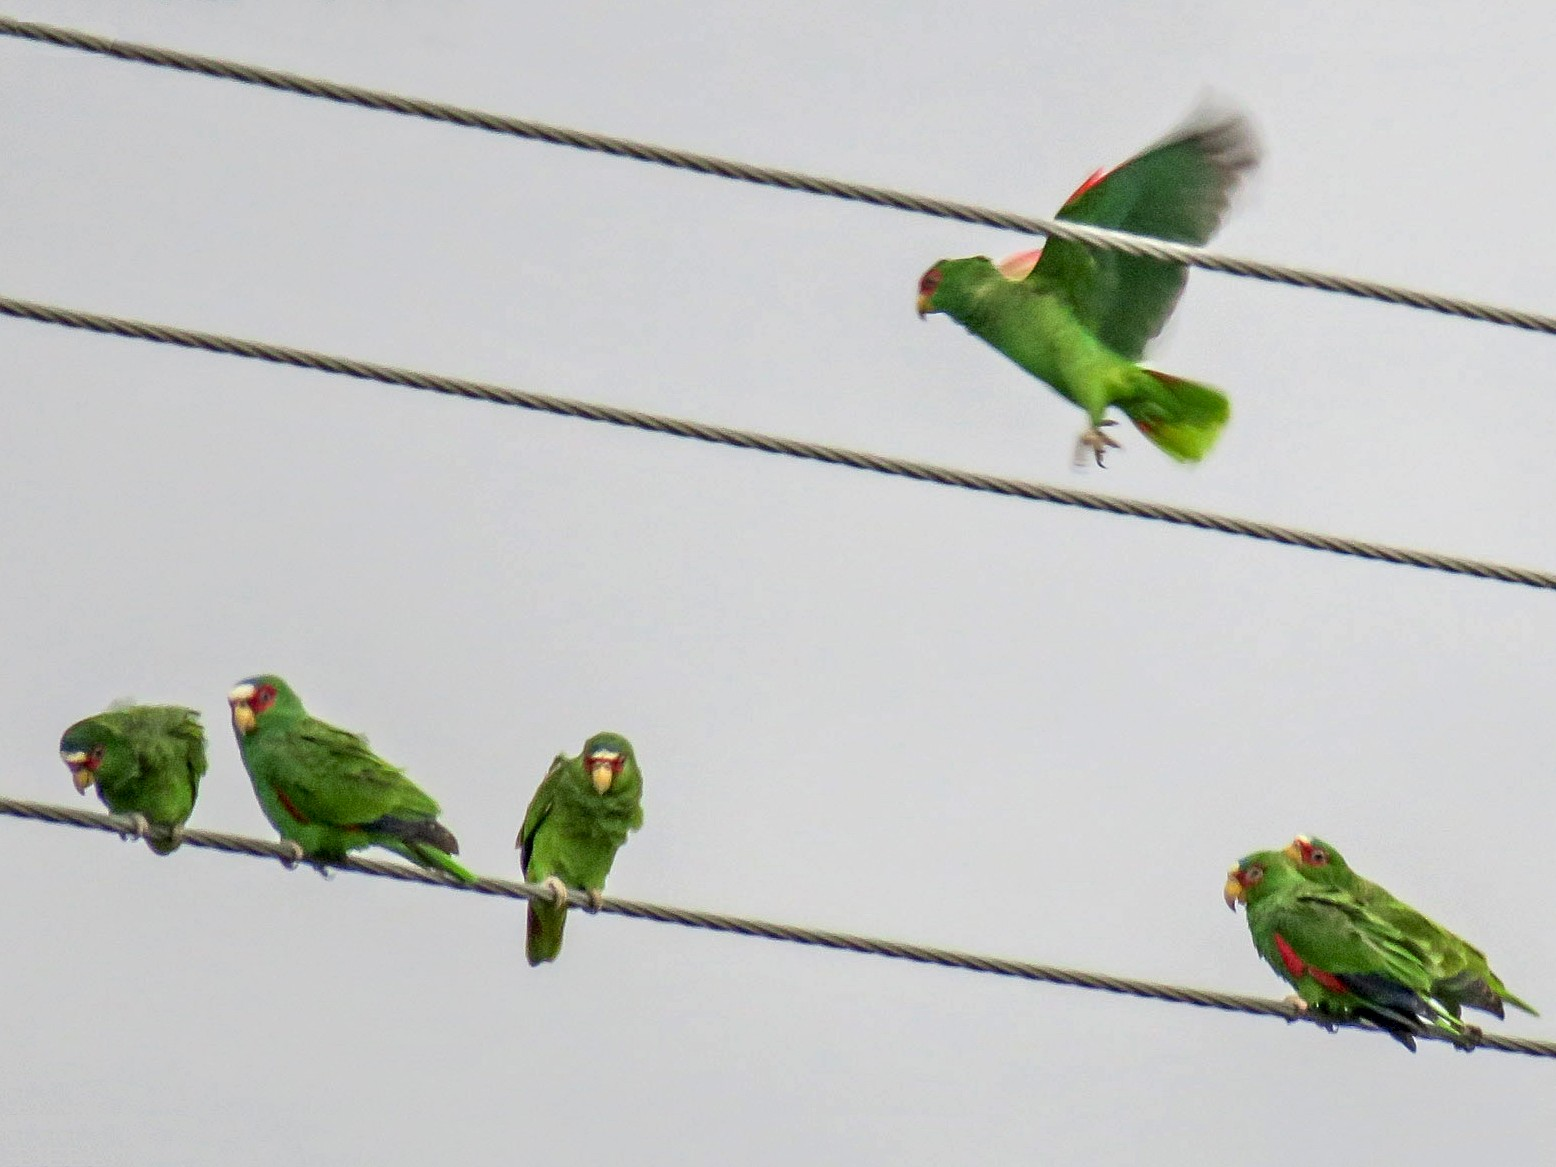 White-fronted Parrot - Brian Pendleton